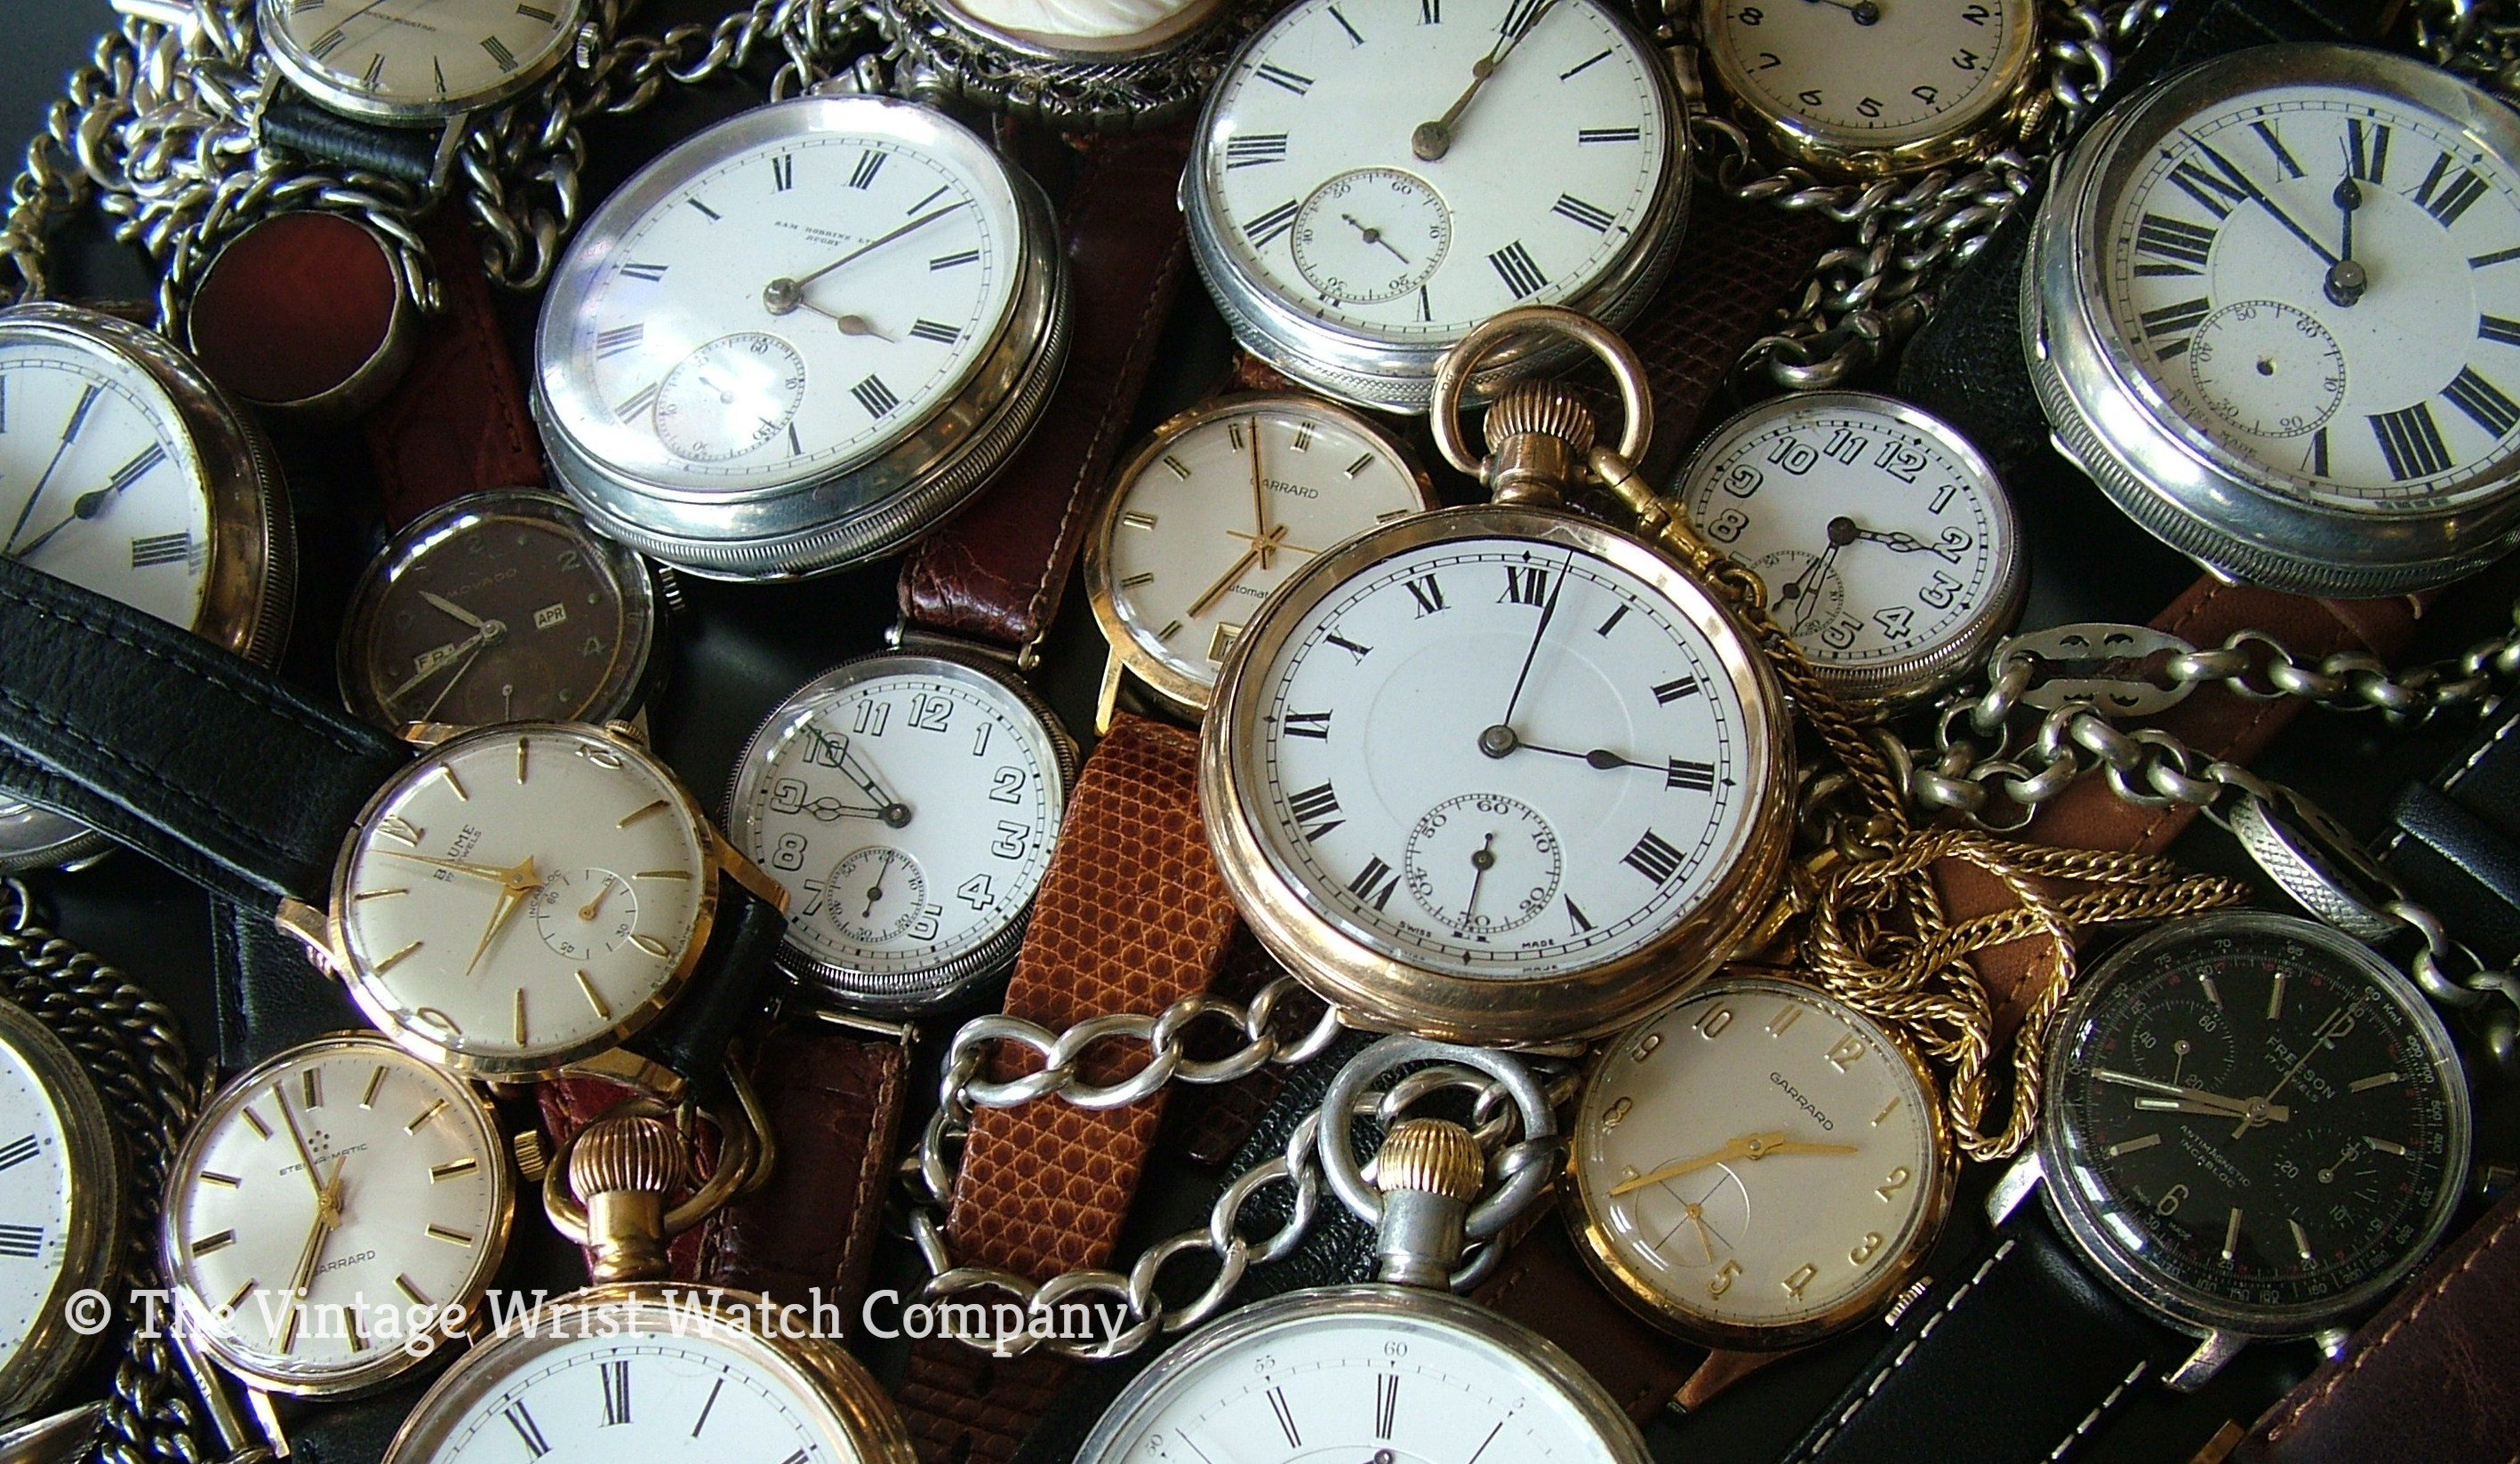 The Vintage Wrist Watch Company image (1 of 1)